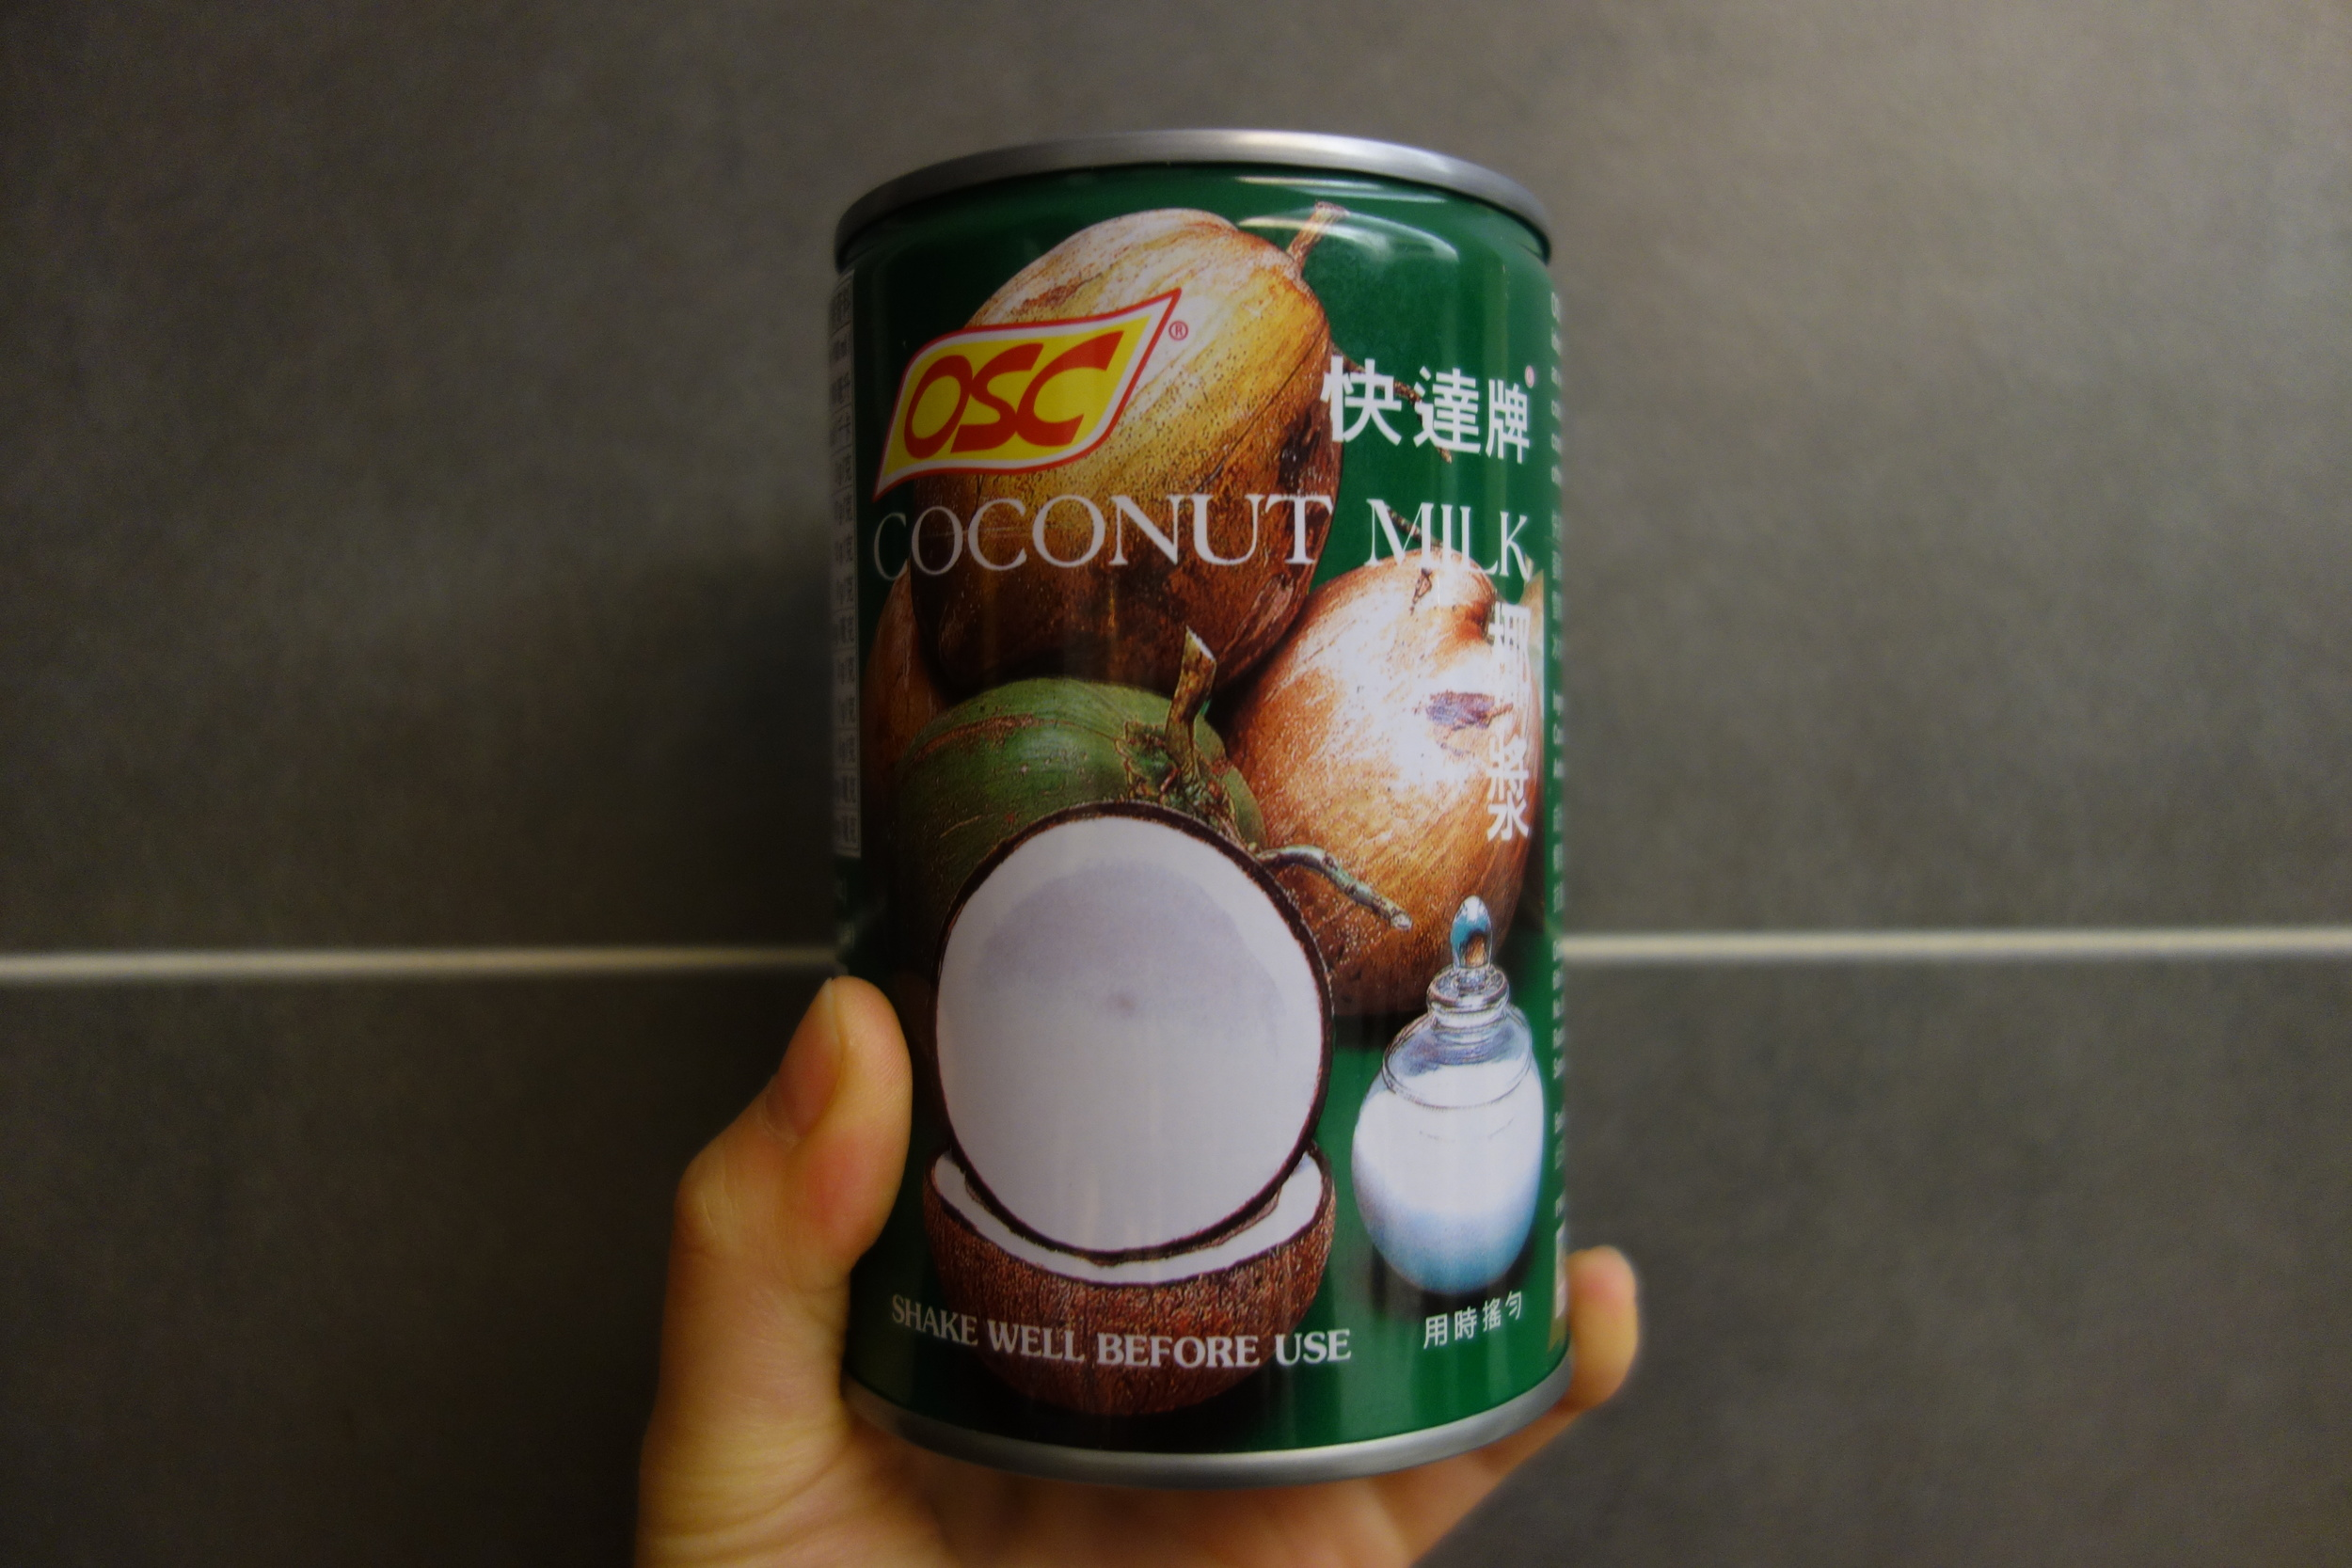 taro-sweet-potato-glutinous-balls-sweet-soup-cantonese-coconut-cream